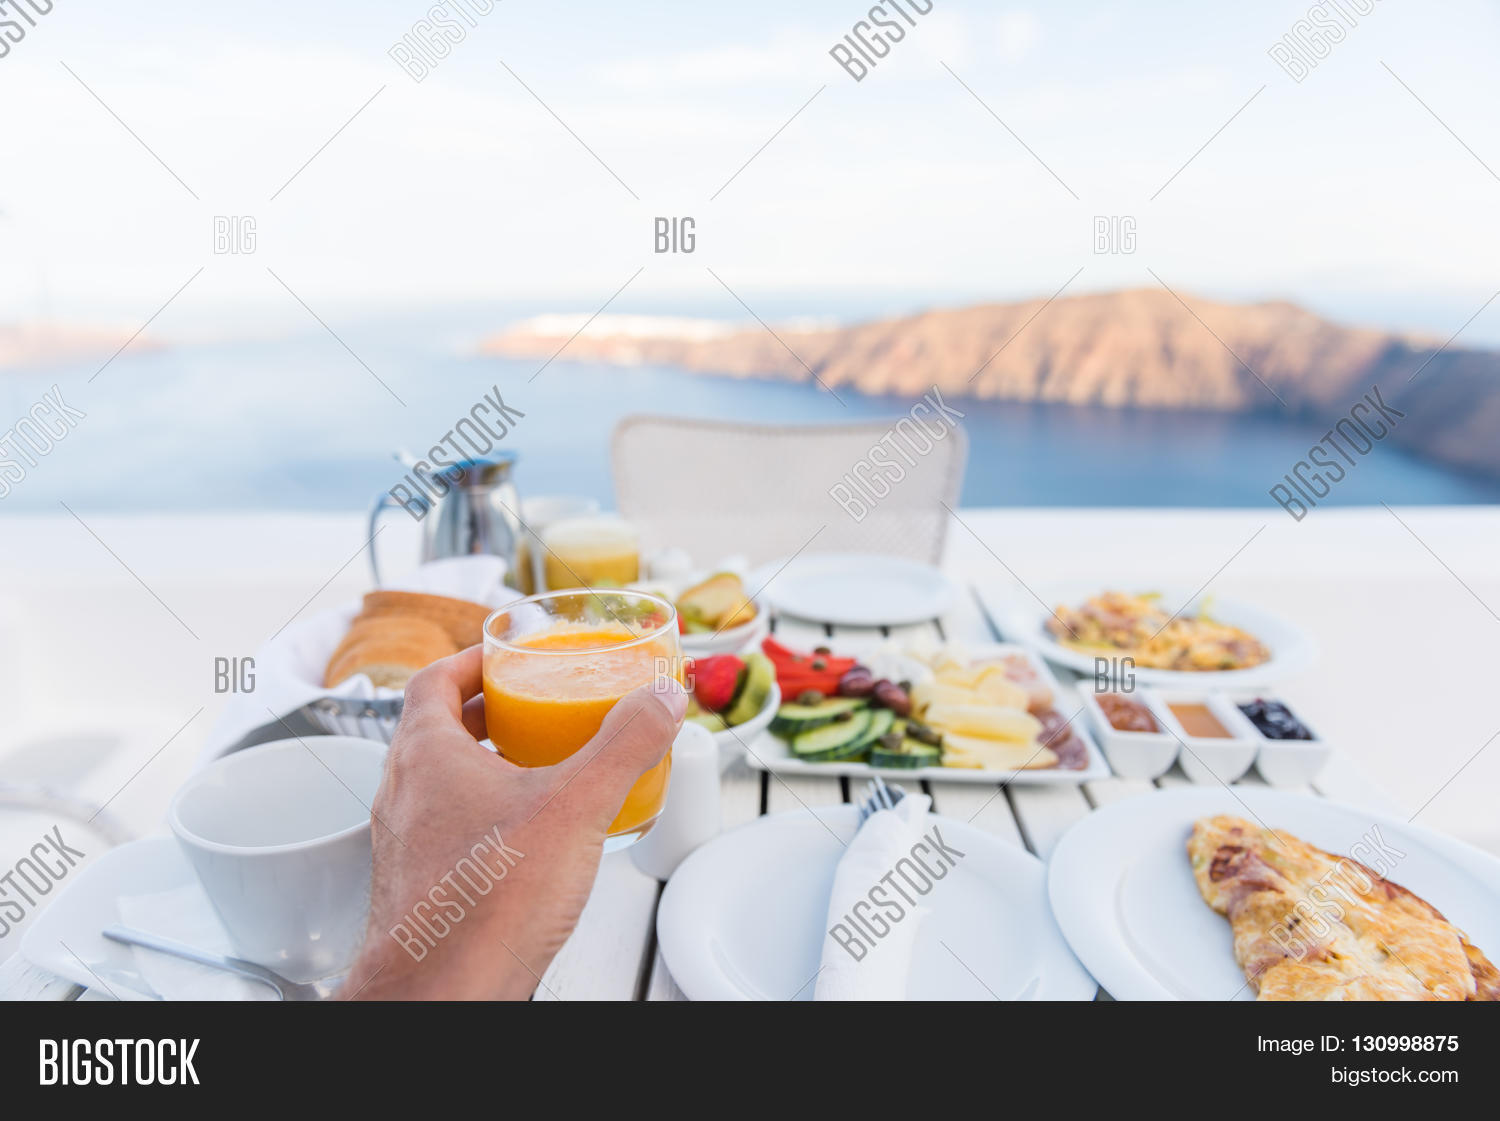 Restaurant table for two - European Vacation Healthy Breakfast Food Selfie Pov Of Man Drinking Morning Orange Juice At Resort